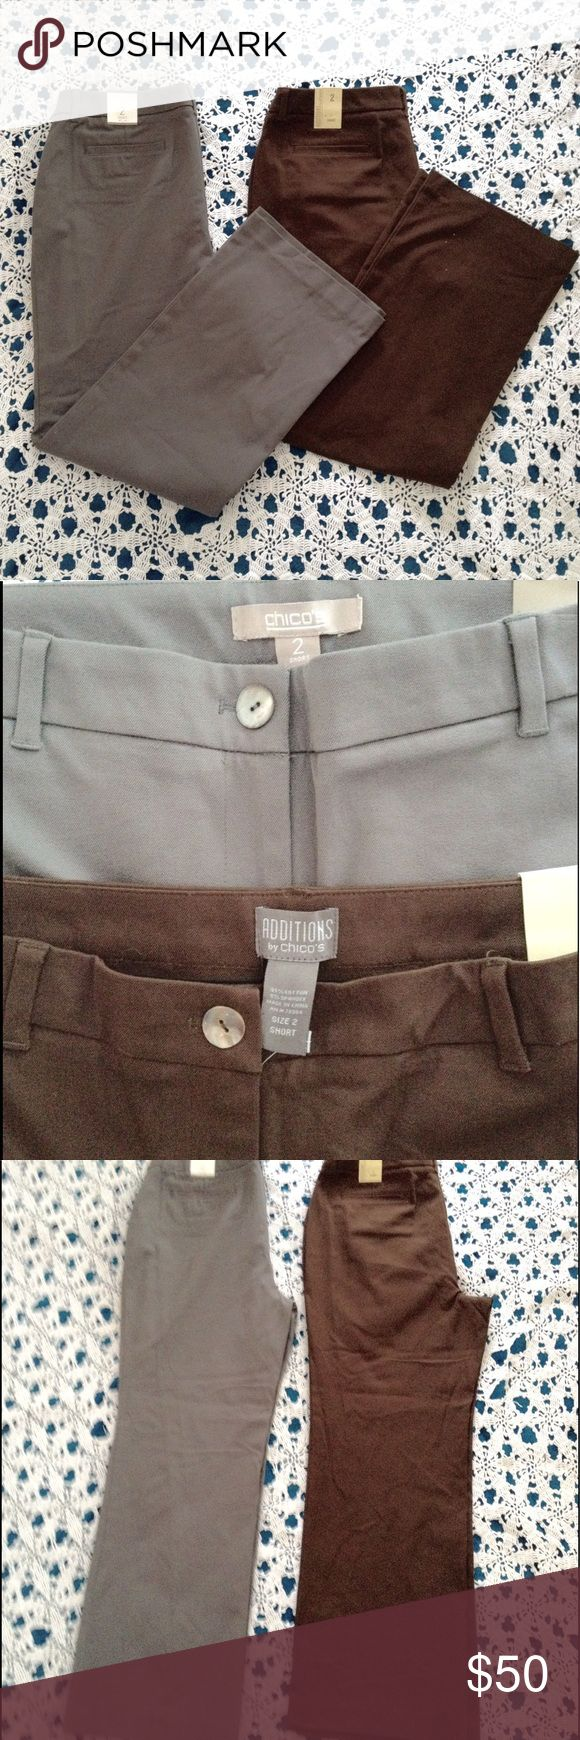 Cotton Chico's Grey and Brown Slacks Pants Bundle of 2 brown and gray, size 2 short, fabric  cotton and spandex new pants by Chico's. they both have mother of pearl button. Price is firm unless it's in a bundle. Chico's Pants